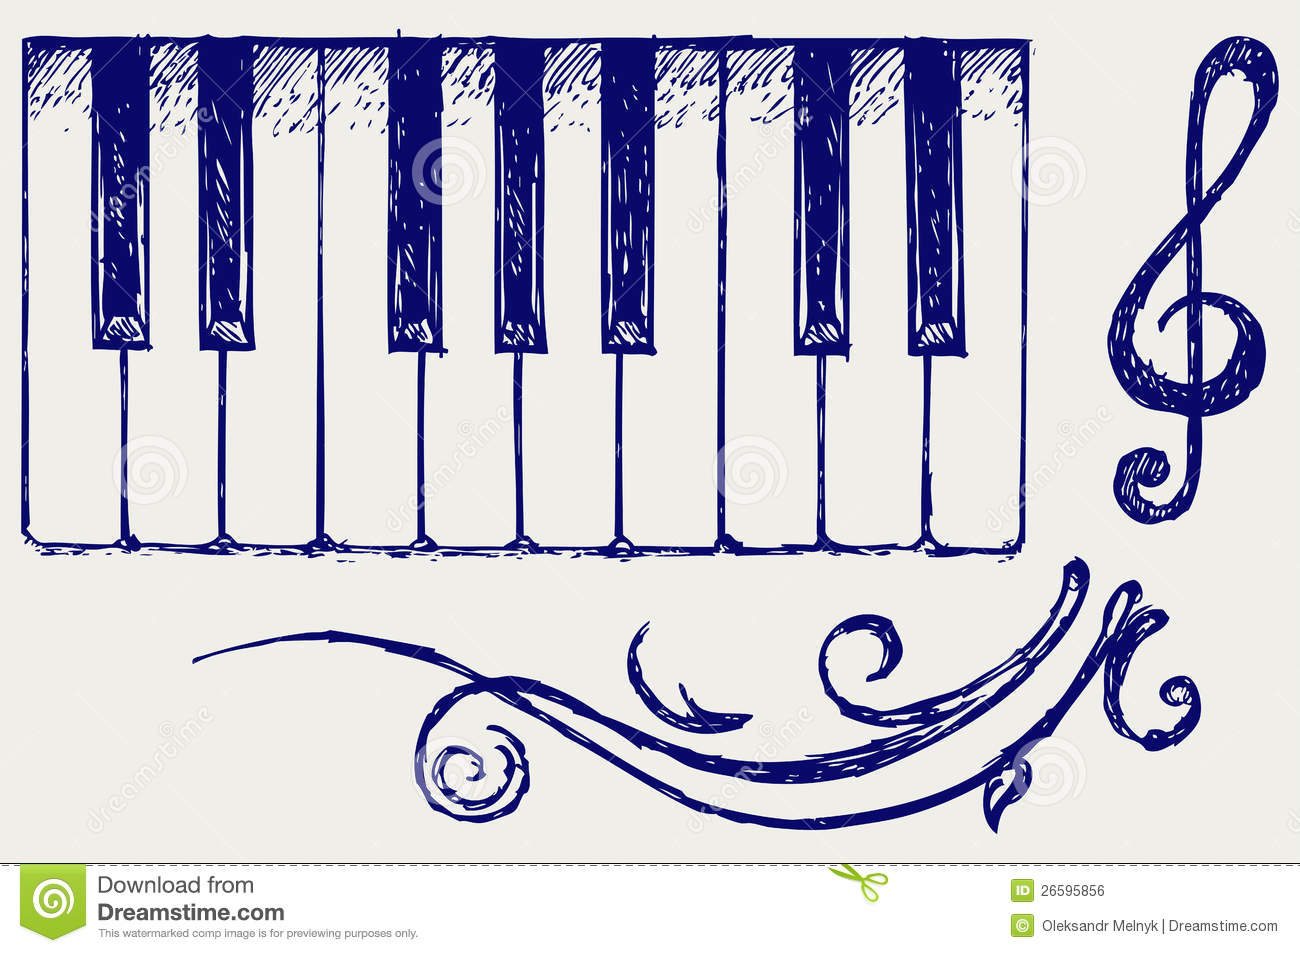 Piano Royalty Free Stock Image - Image: 26595856